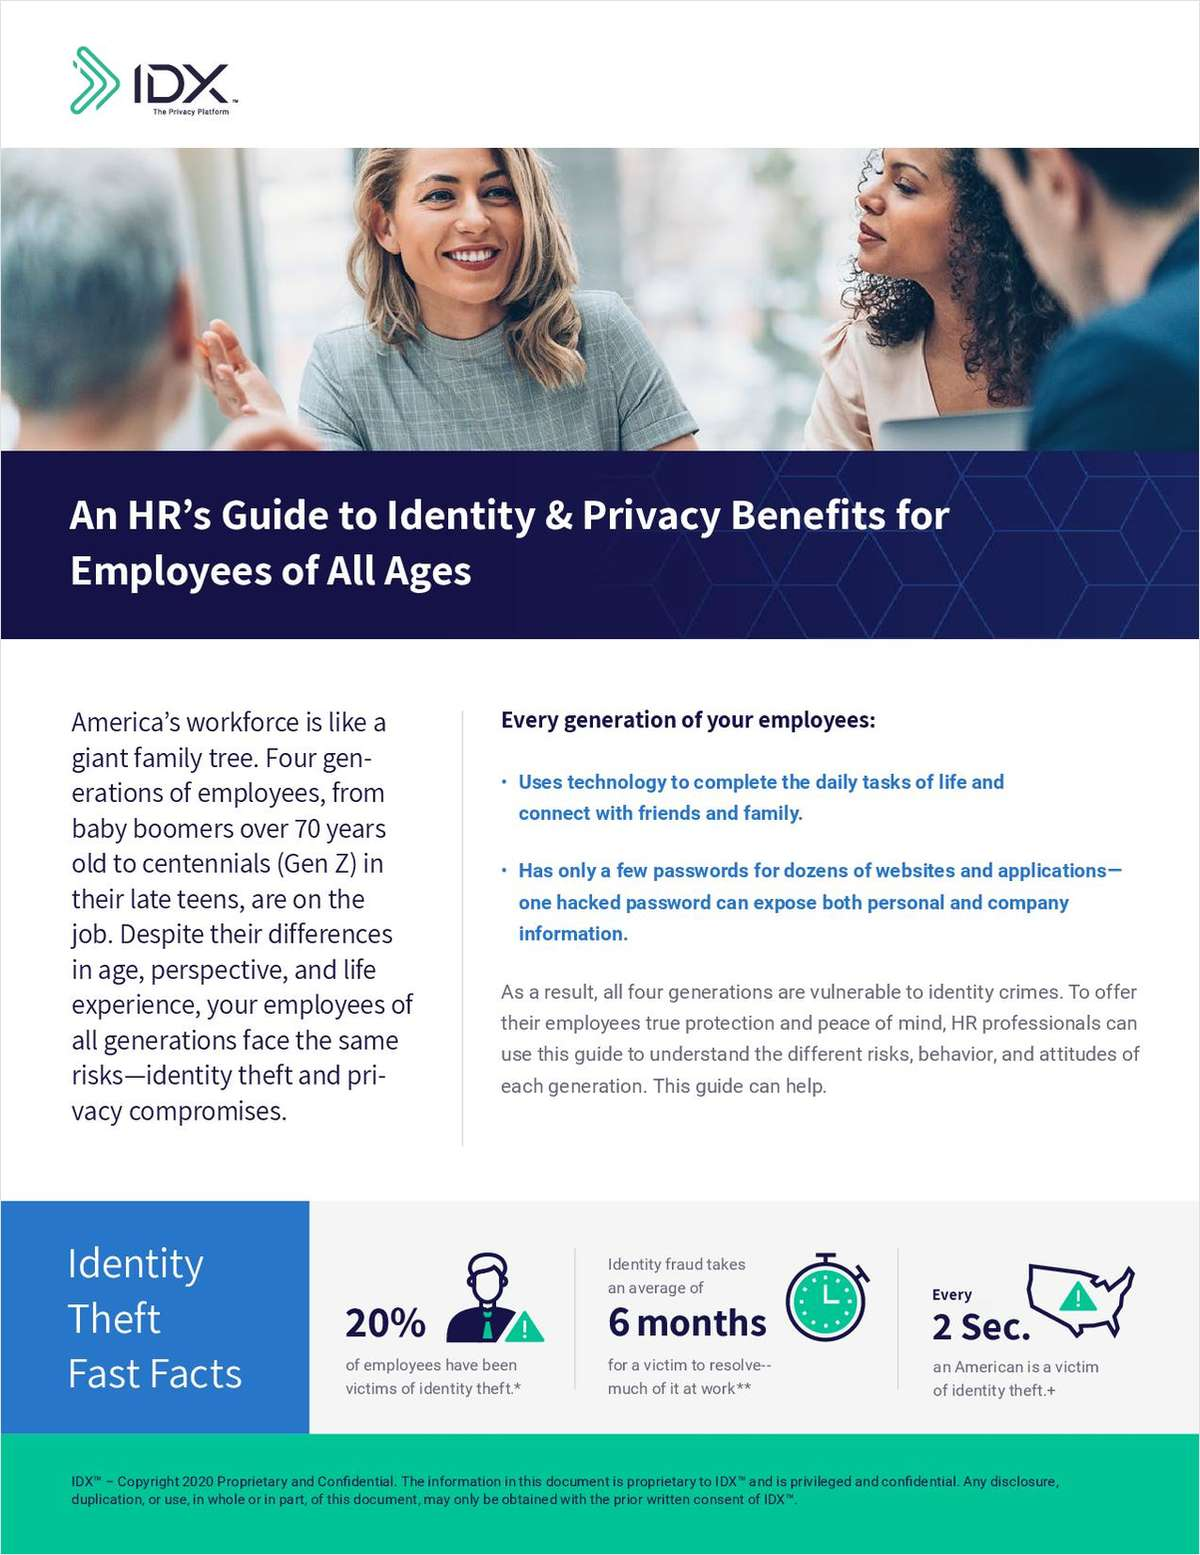 Help Your Clients With Identity & Privacy Benefits To Protect Their Employees of All Ages